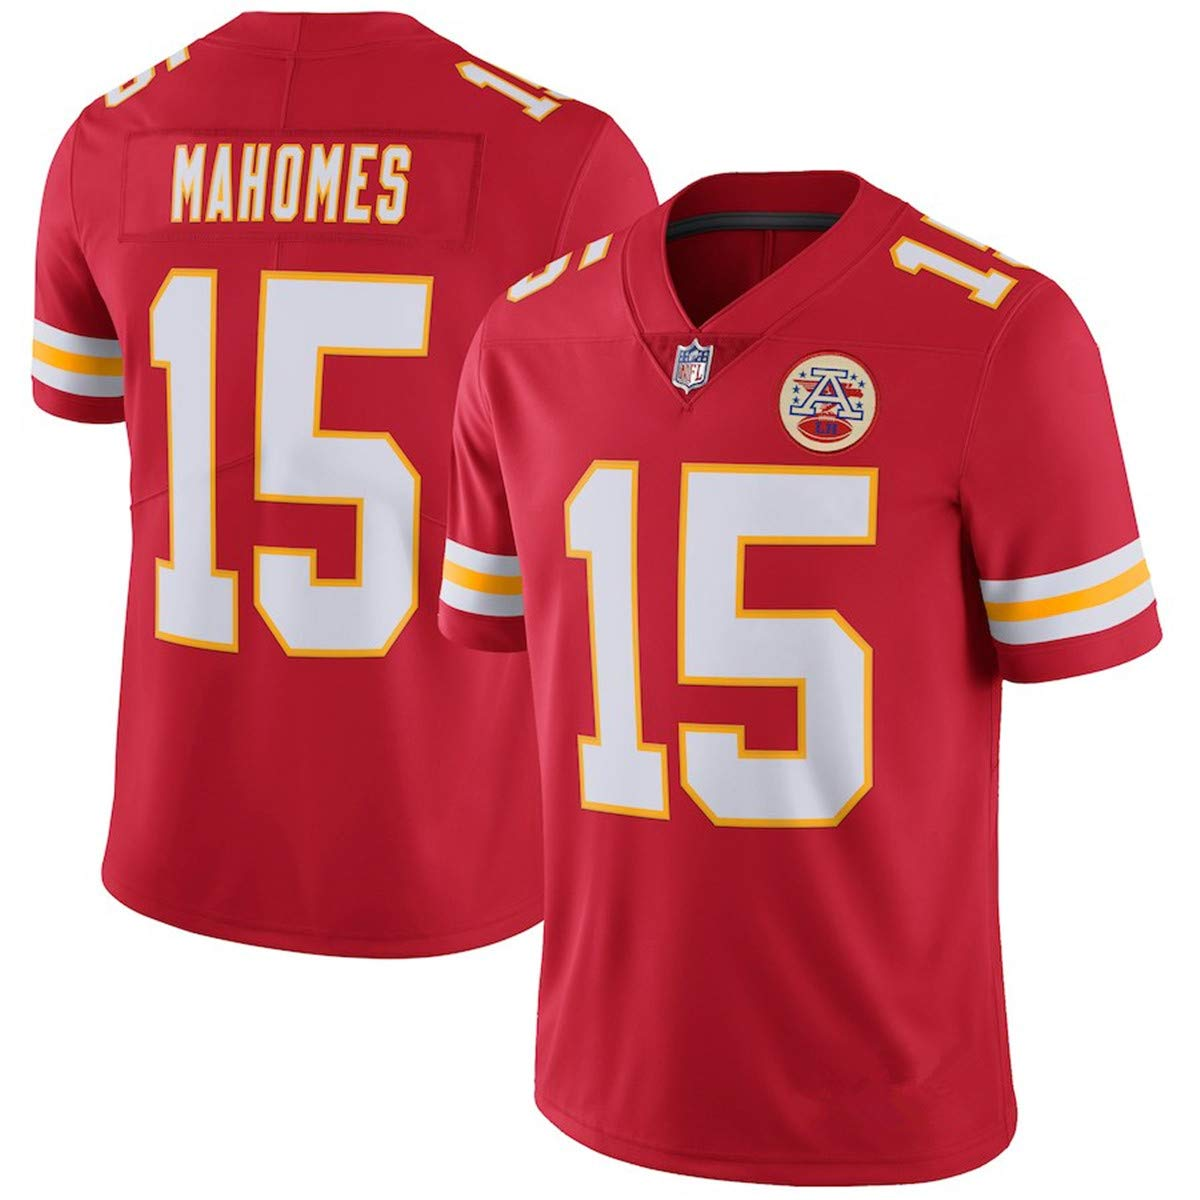 new arrival 568f9 b9fca Outerstuff Youth #15 Kansas City Chiefs Patrick Mahomes Player Jersey Red -  BSA Soar